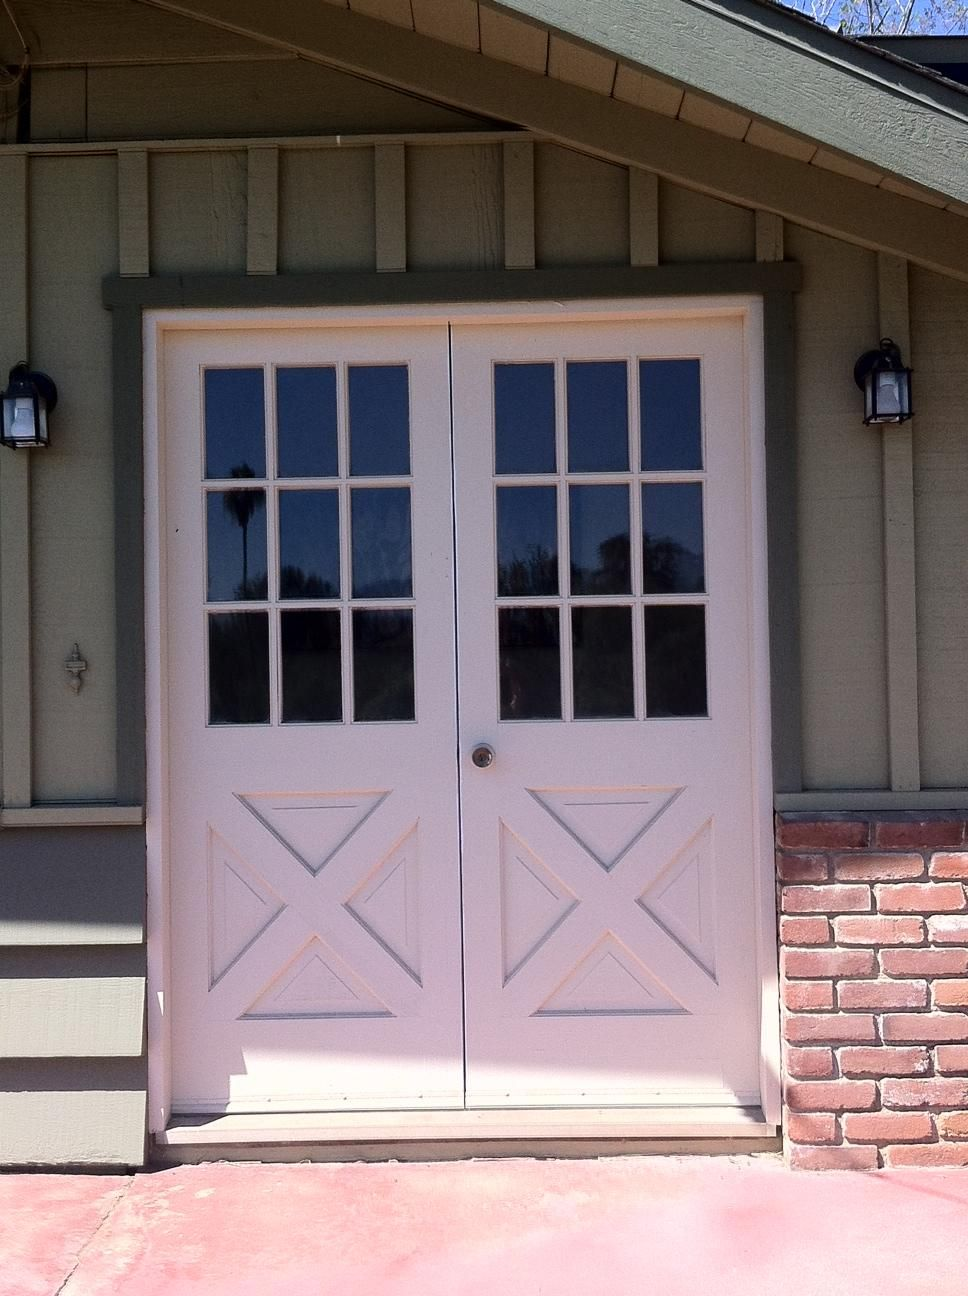 How To Set Up Board And Batten Or Exterior Siding Board And Batten Siding Ideas Board